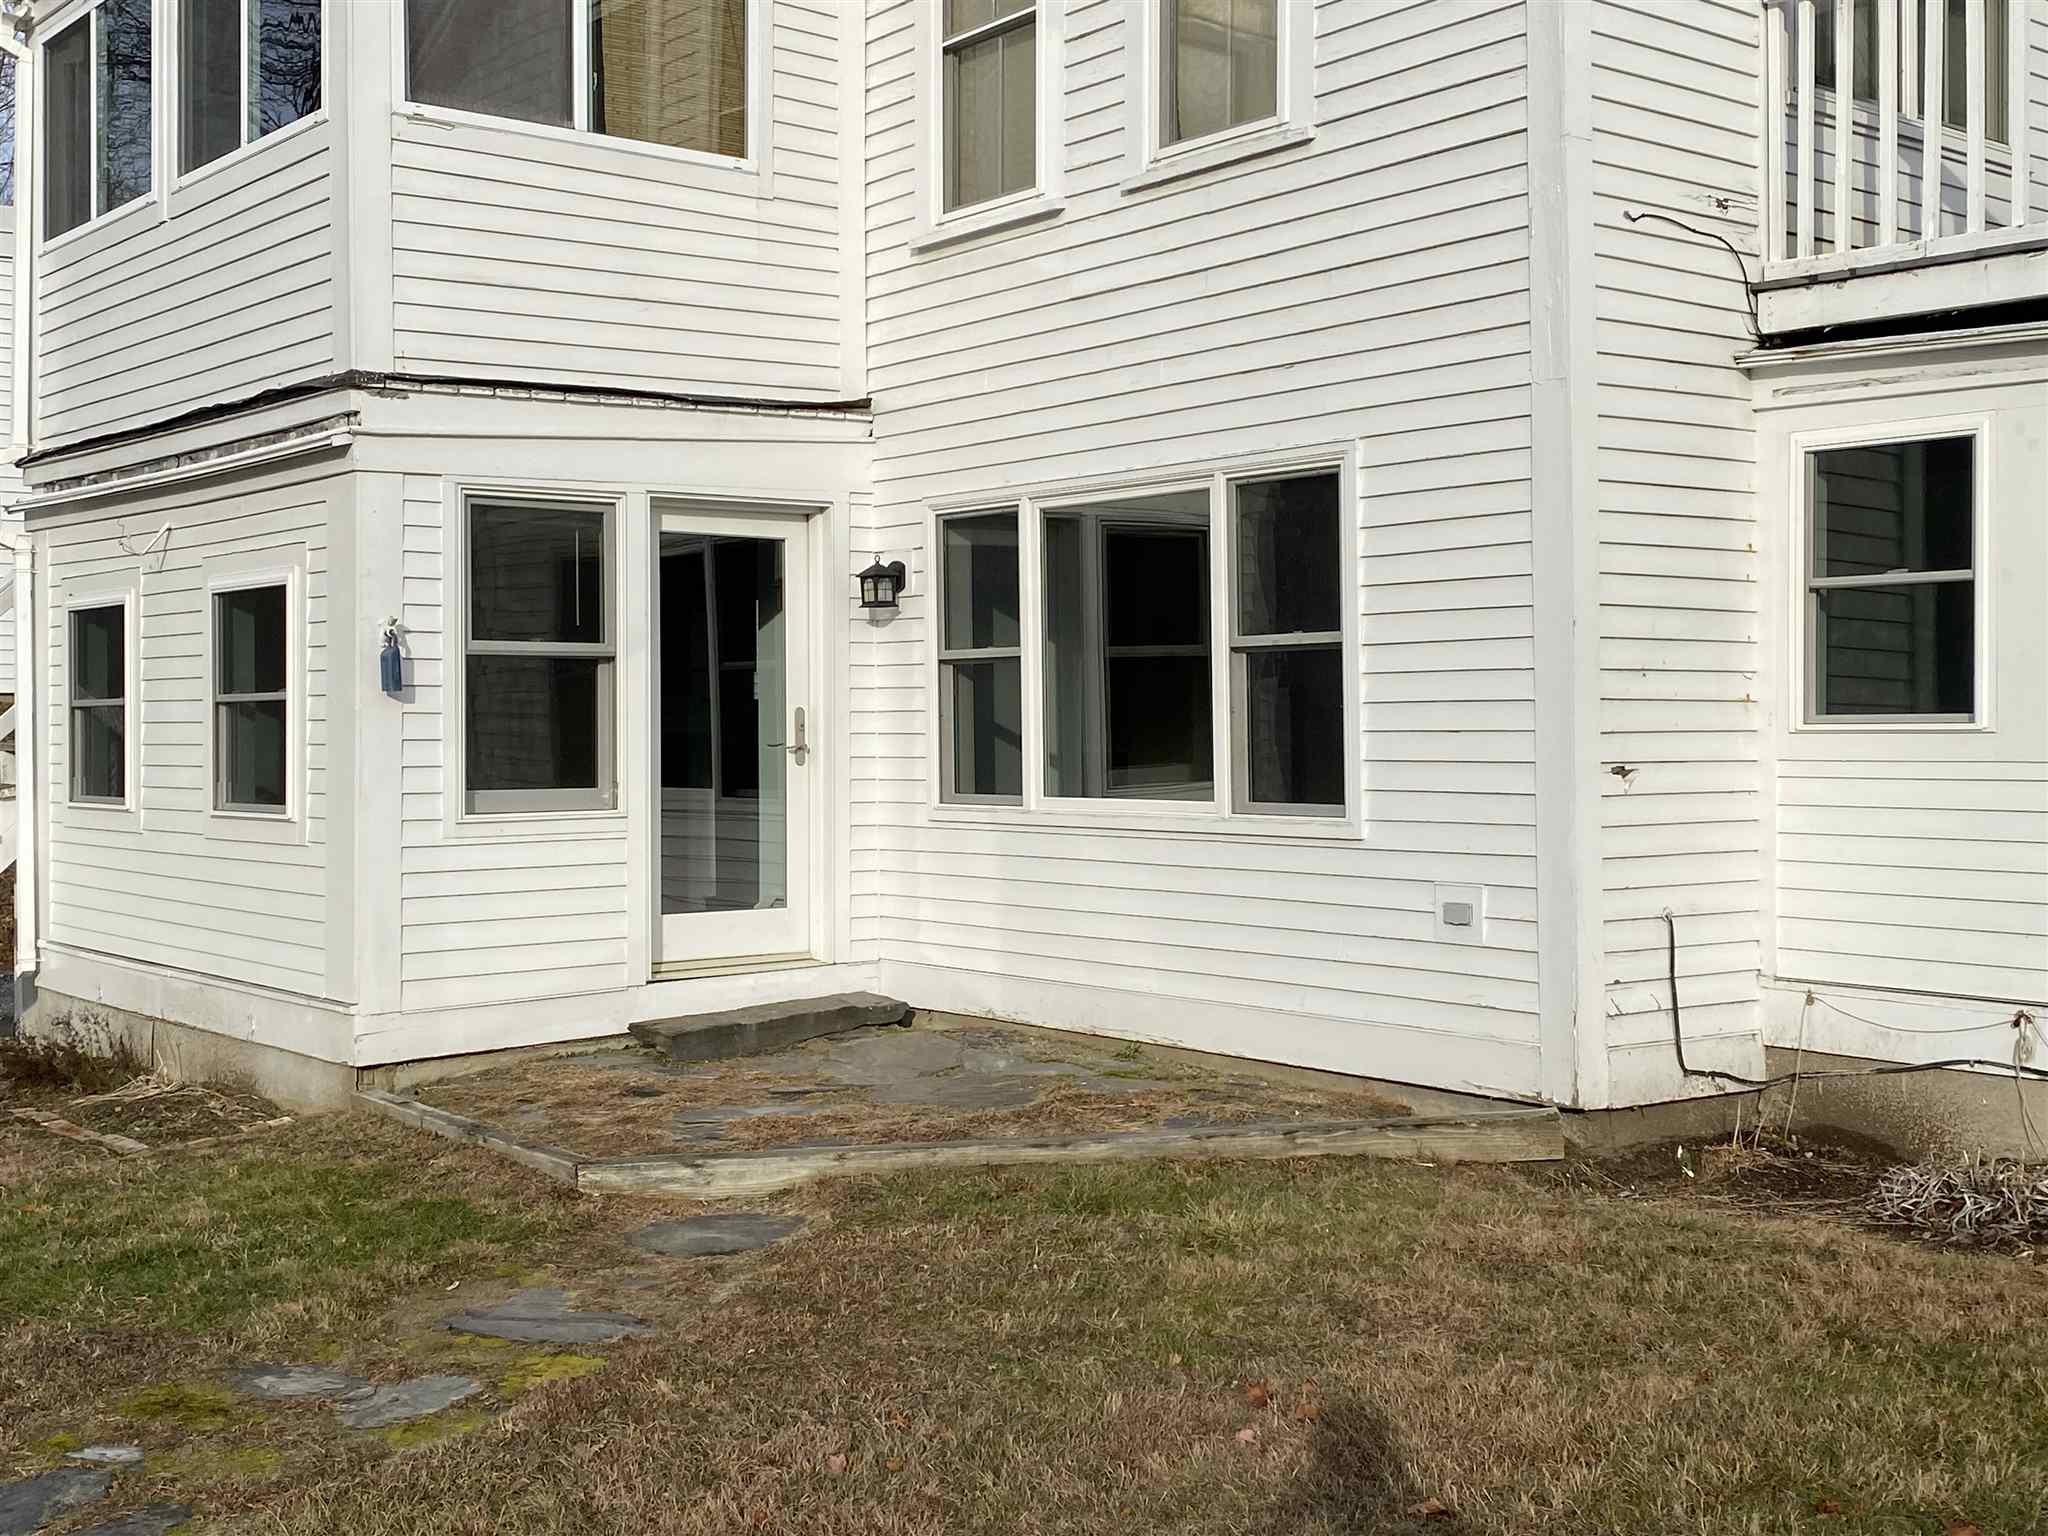 LYME NH Condos for sale